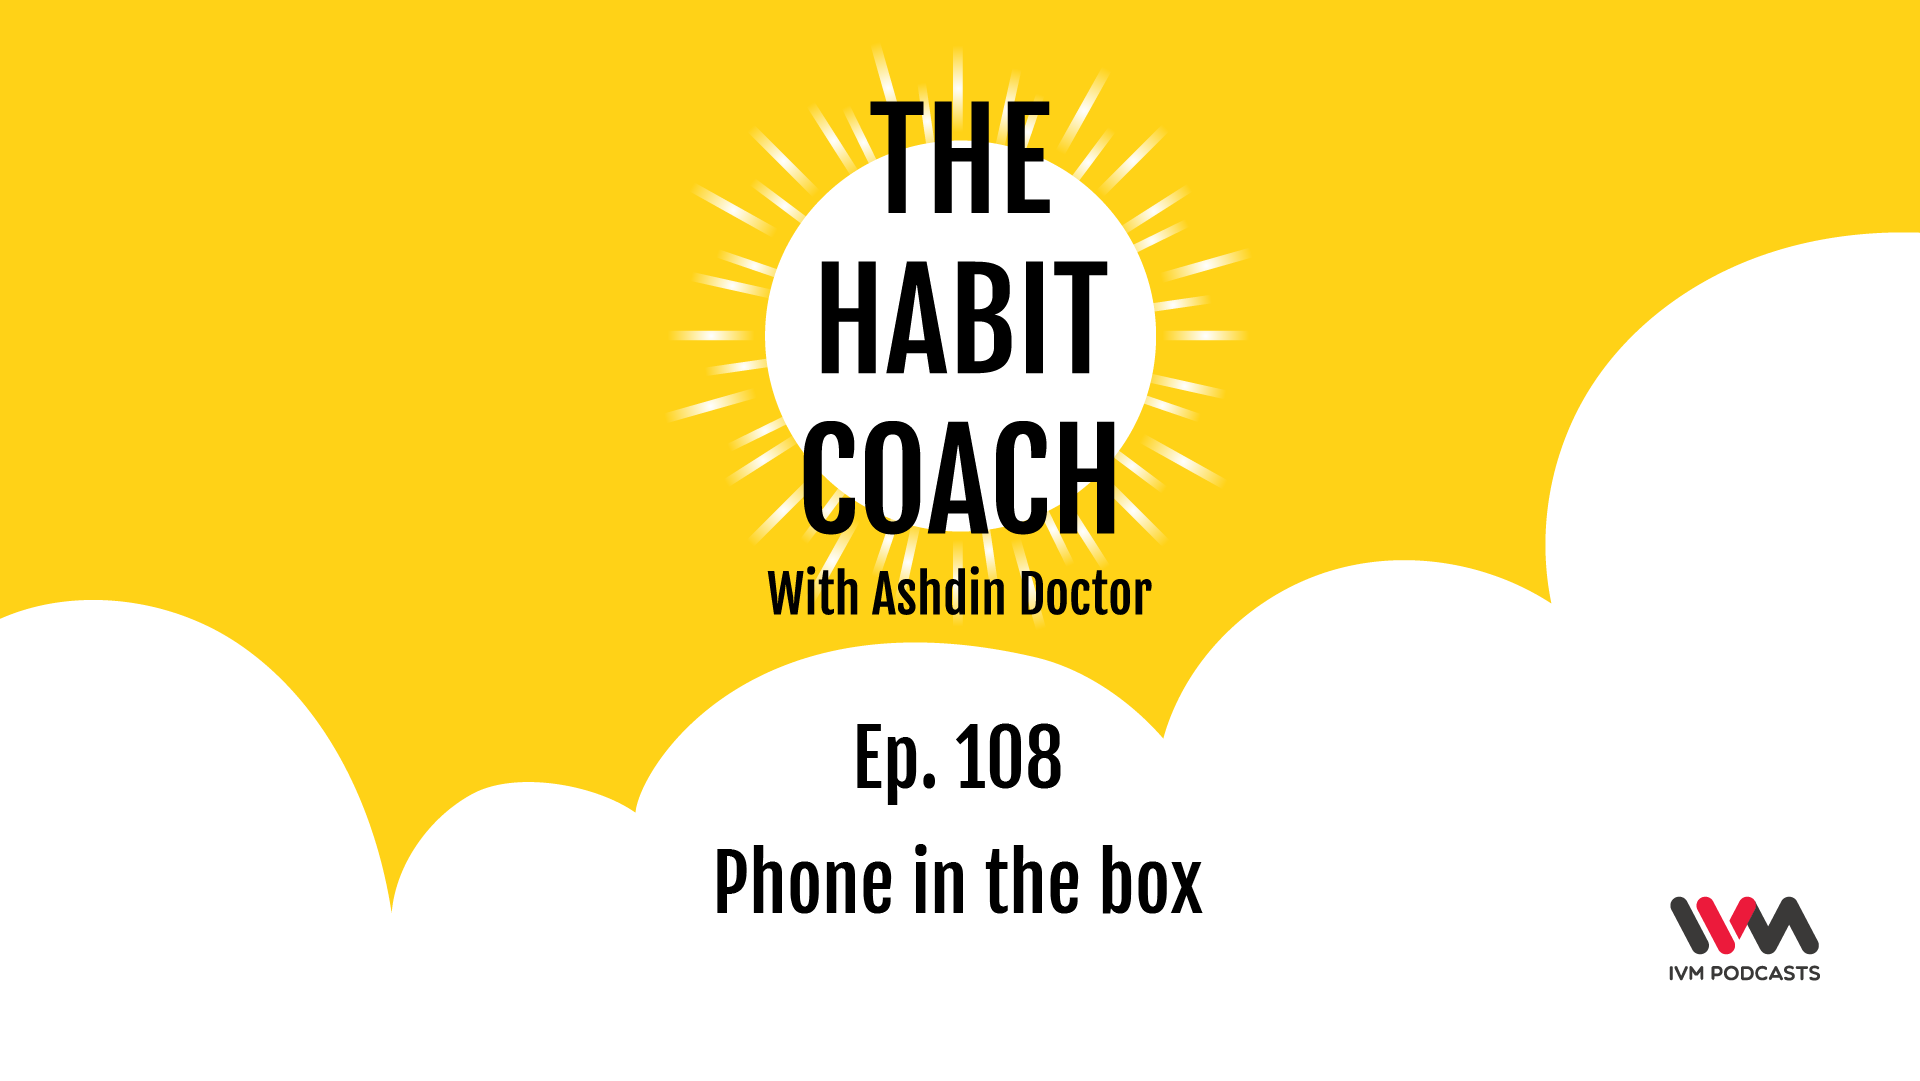 TheHabitCoachEpisode108.png